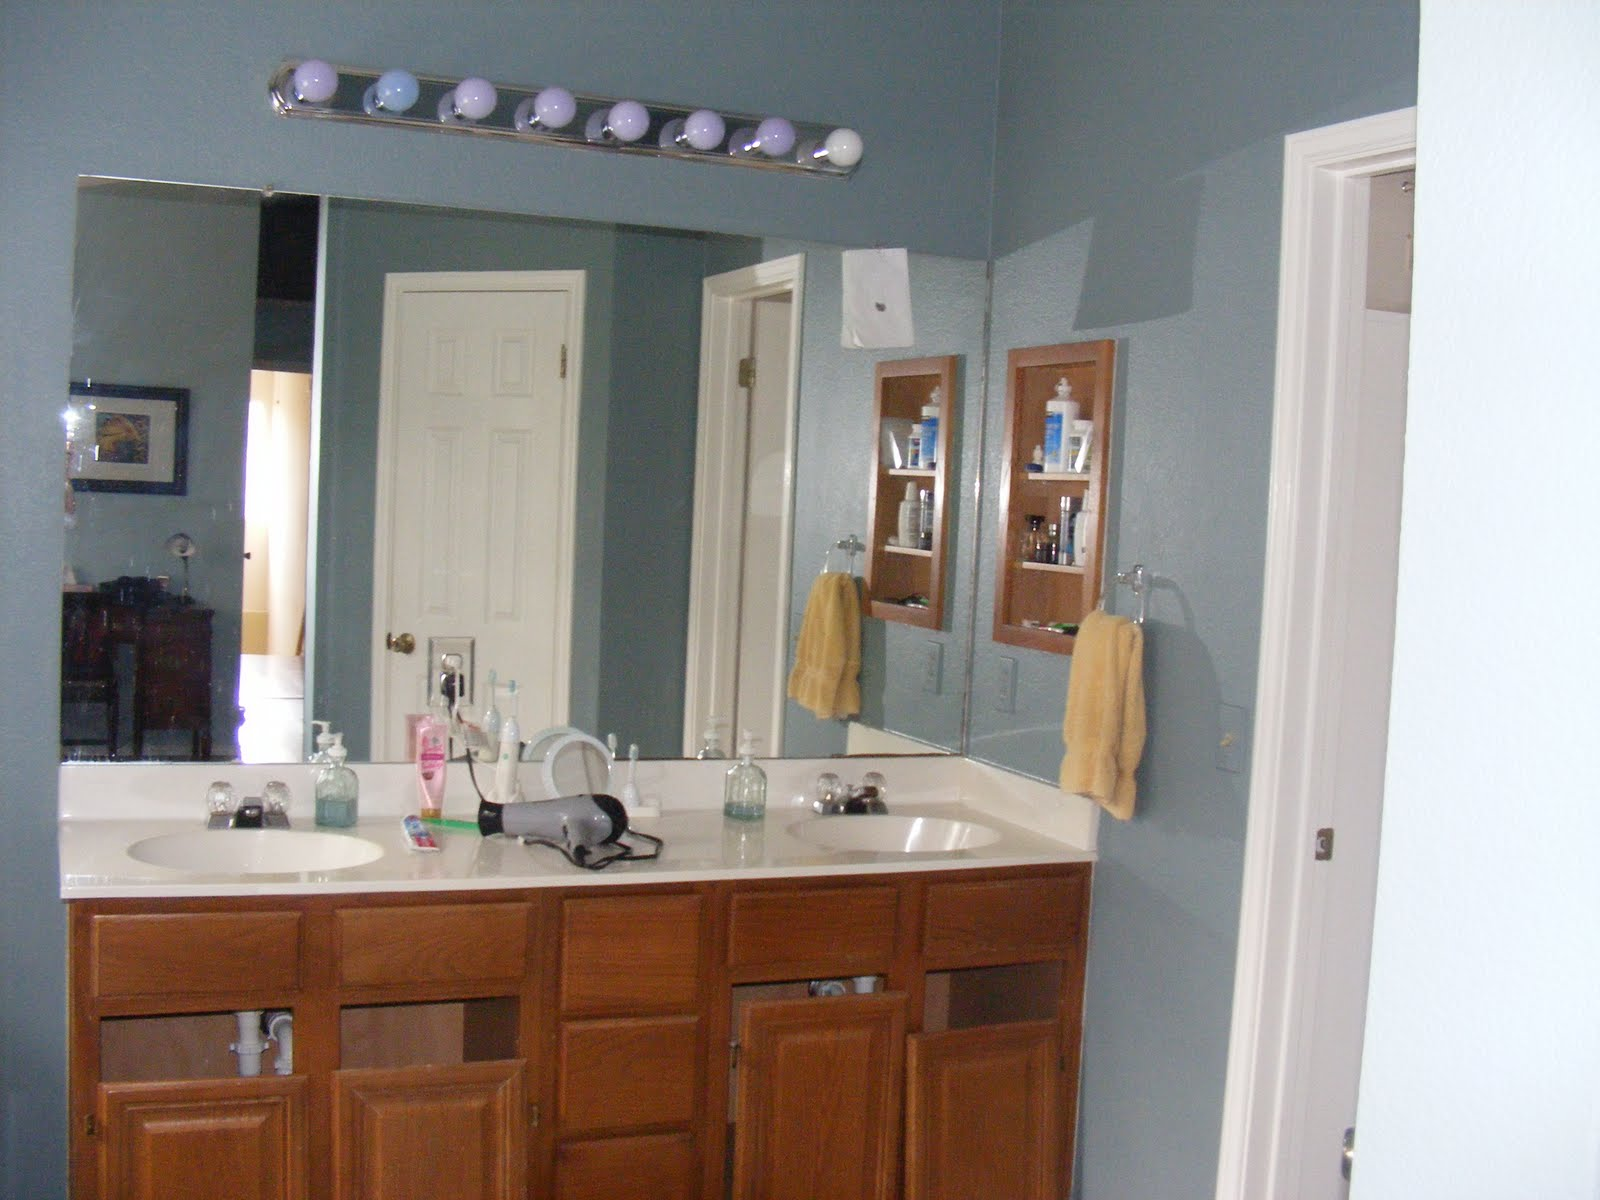 Favorite Red's Rave: How To Strip And Paint Your Bathroom Vanity GG26